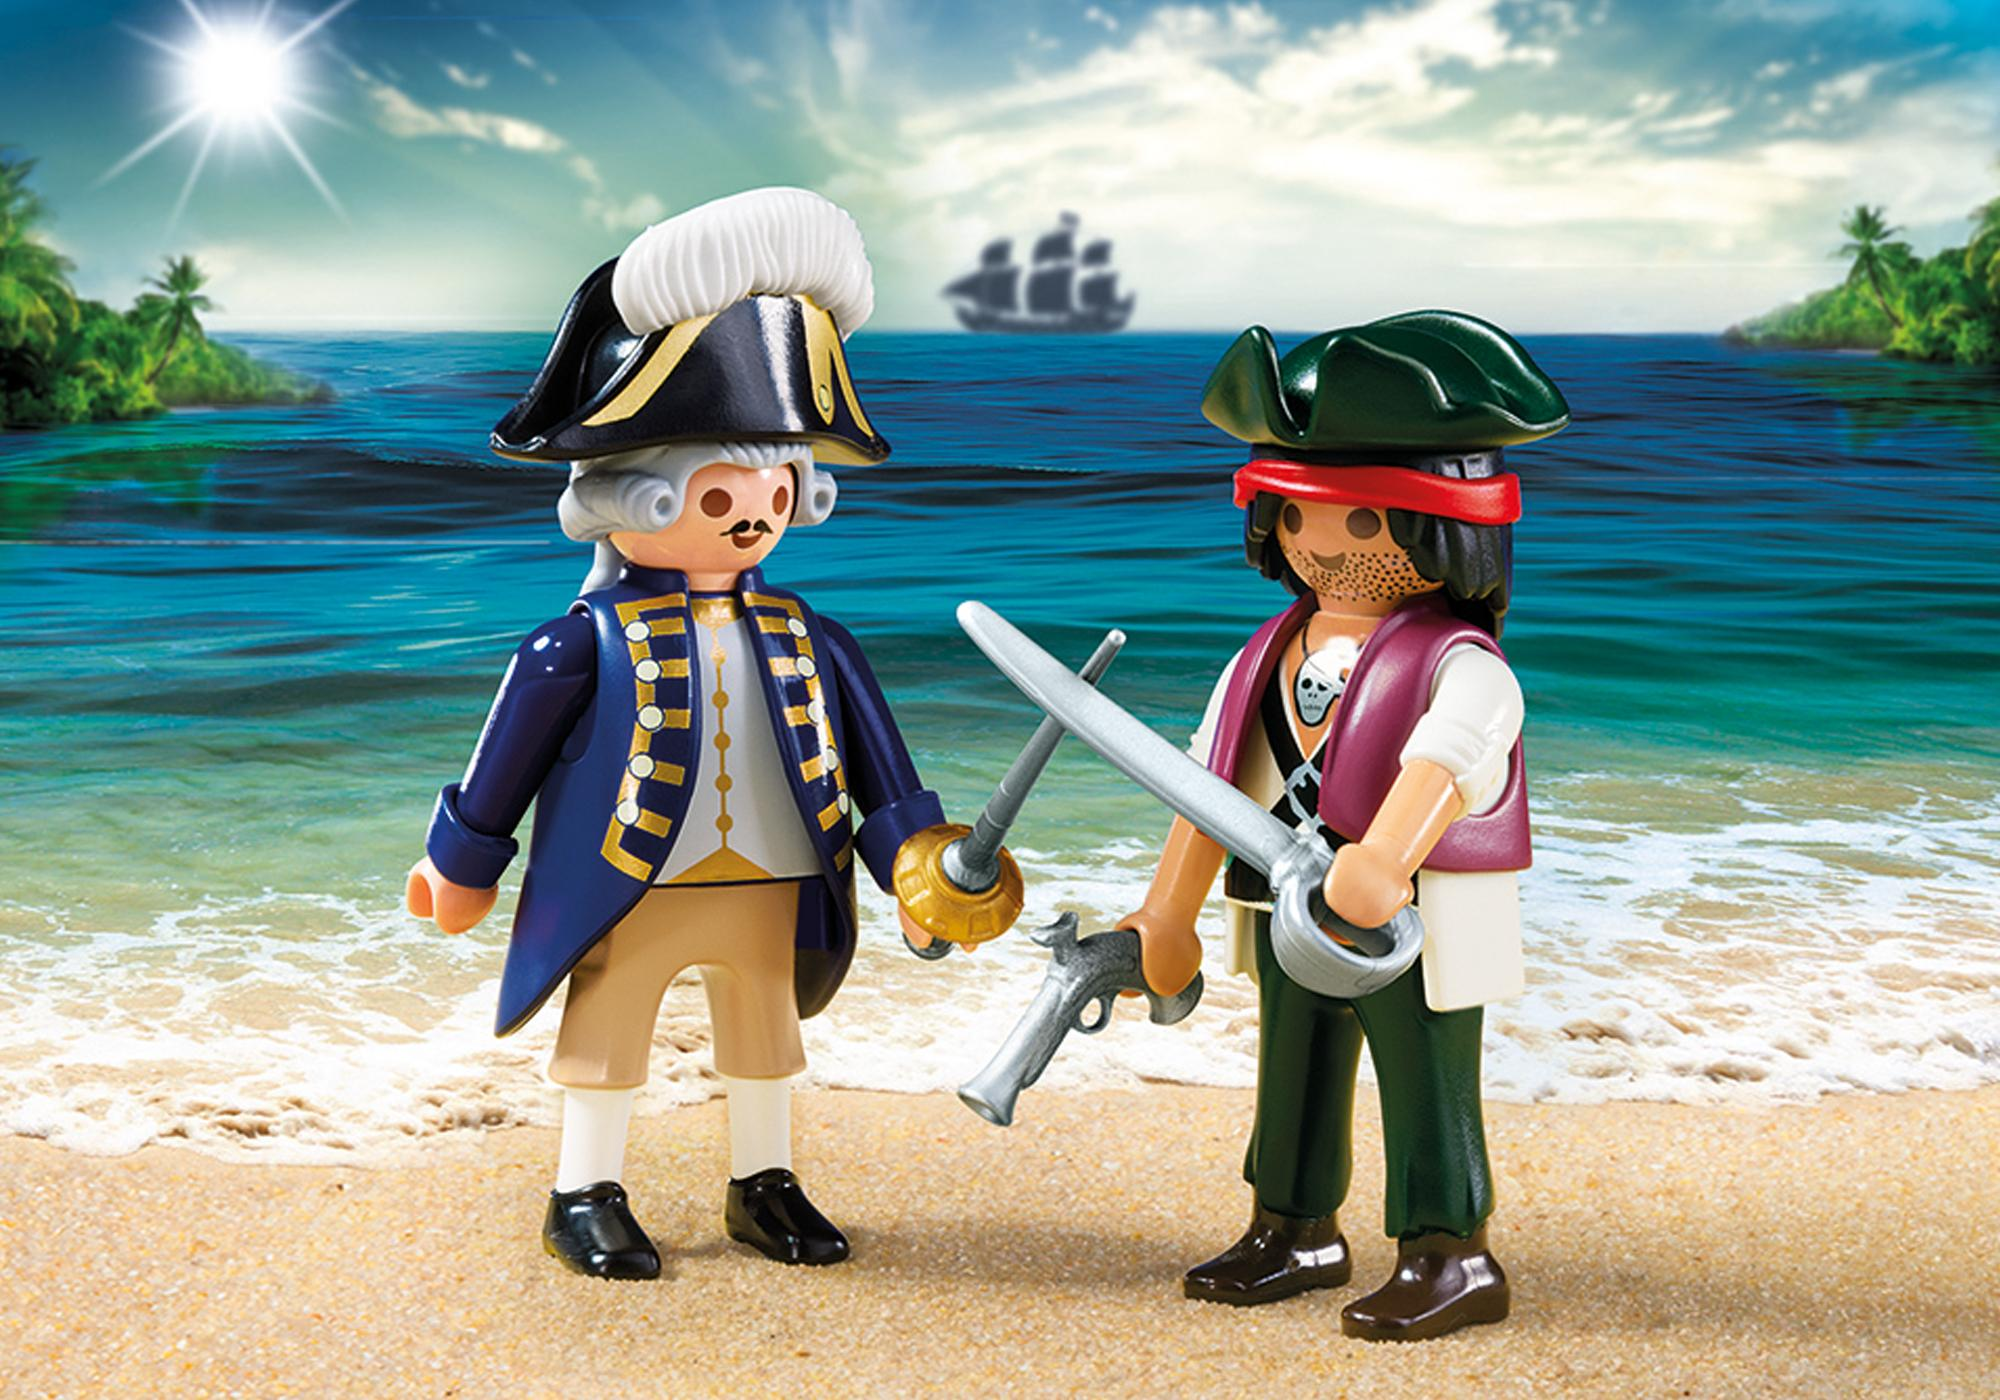 http://media.playmobil.com/i/playmobil/6846_product_detail